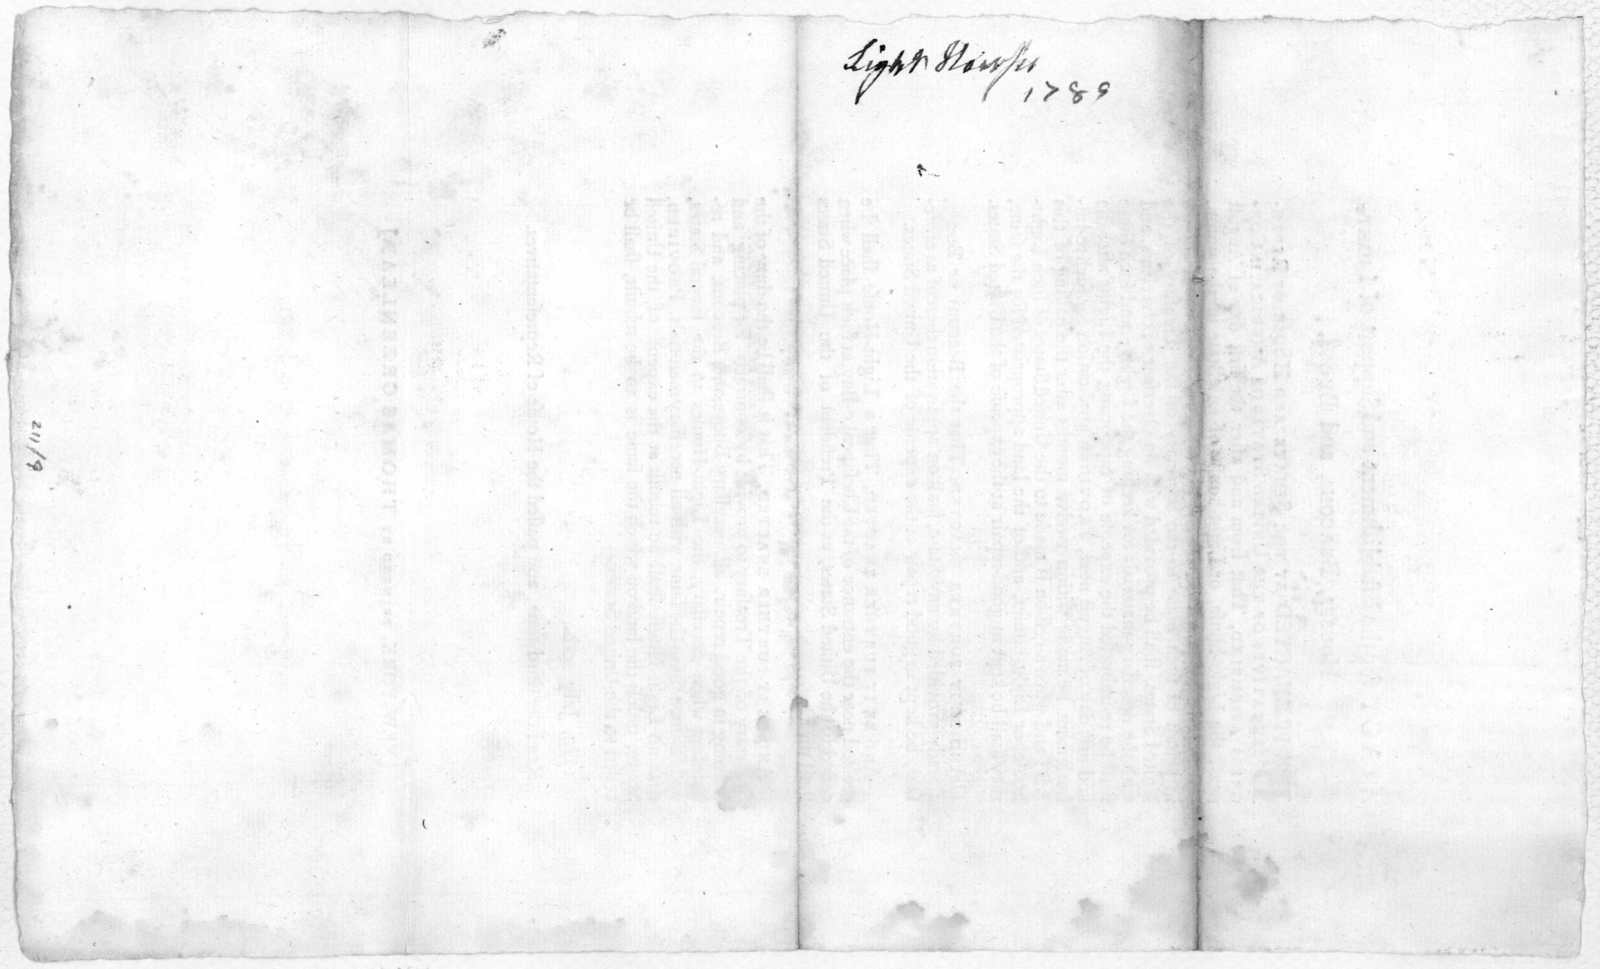 An act for the establishment and support of light houses, beacons and buoys ... 1789 July 20h. Read the third time and passed the House of representatives. New York: Printed by Thomas Greenleaf [1789].